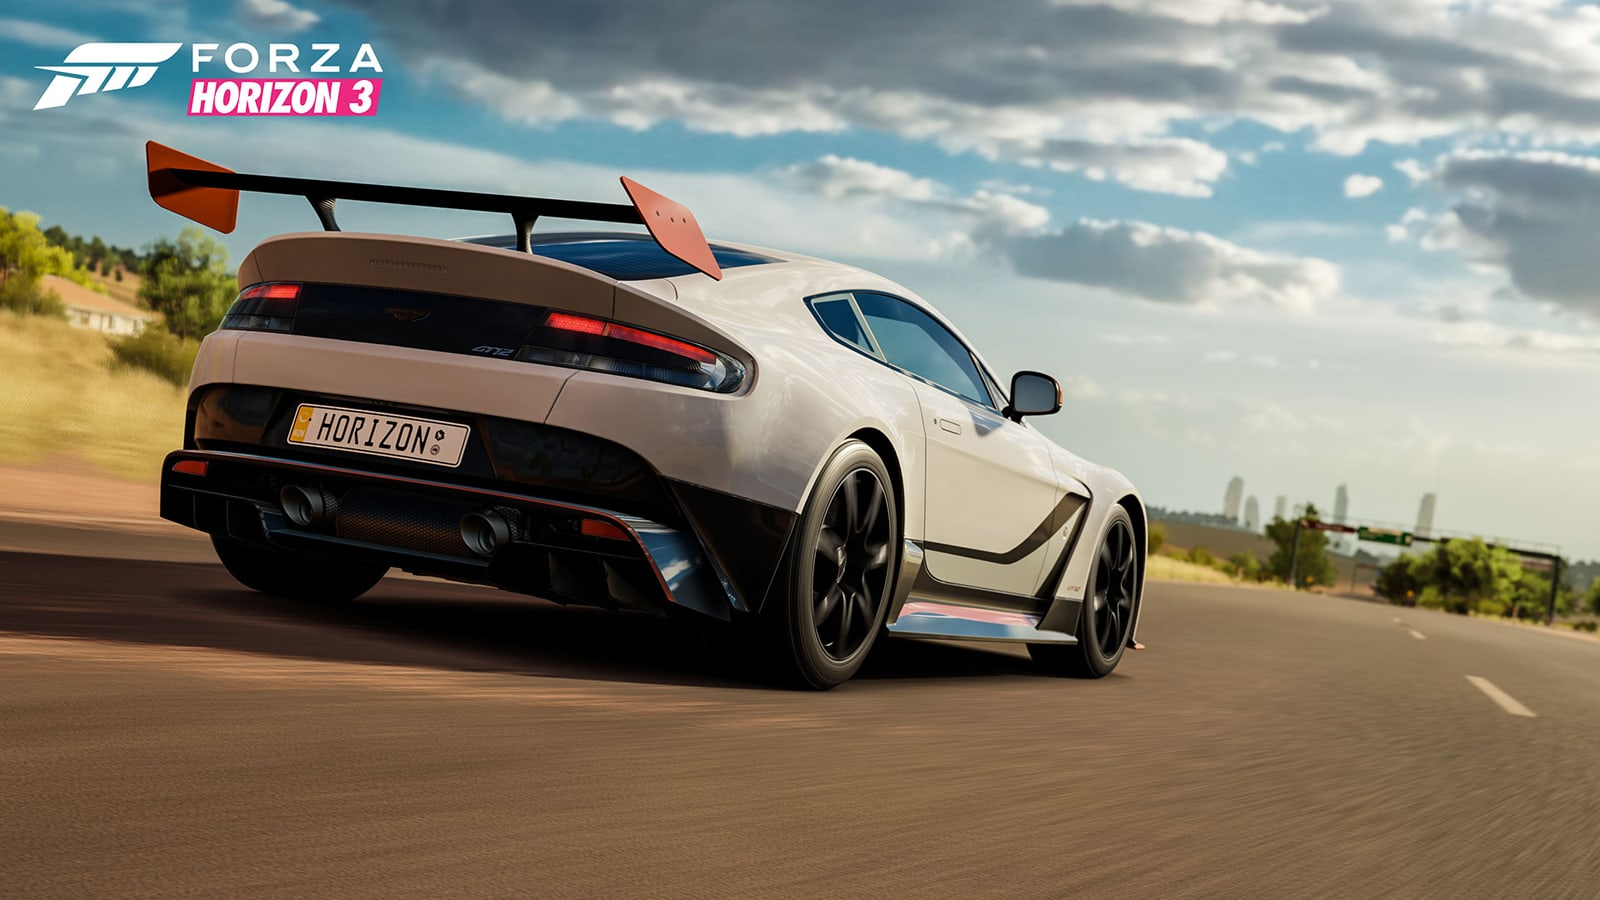 Microsoft released the wrong version of 'Forza Horizon 3' for PC